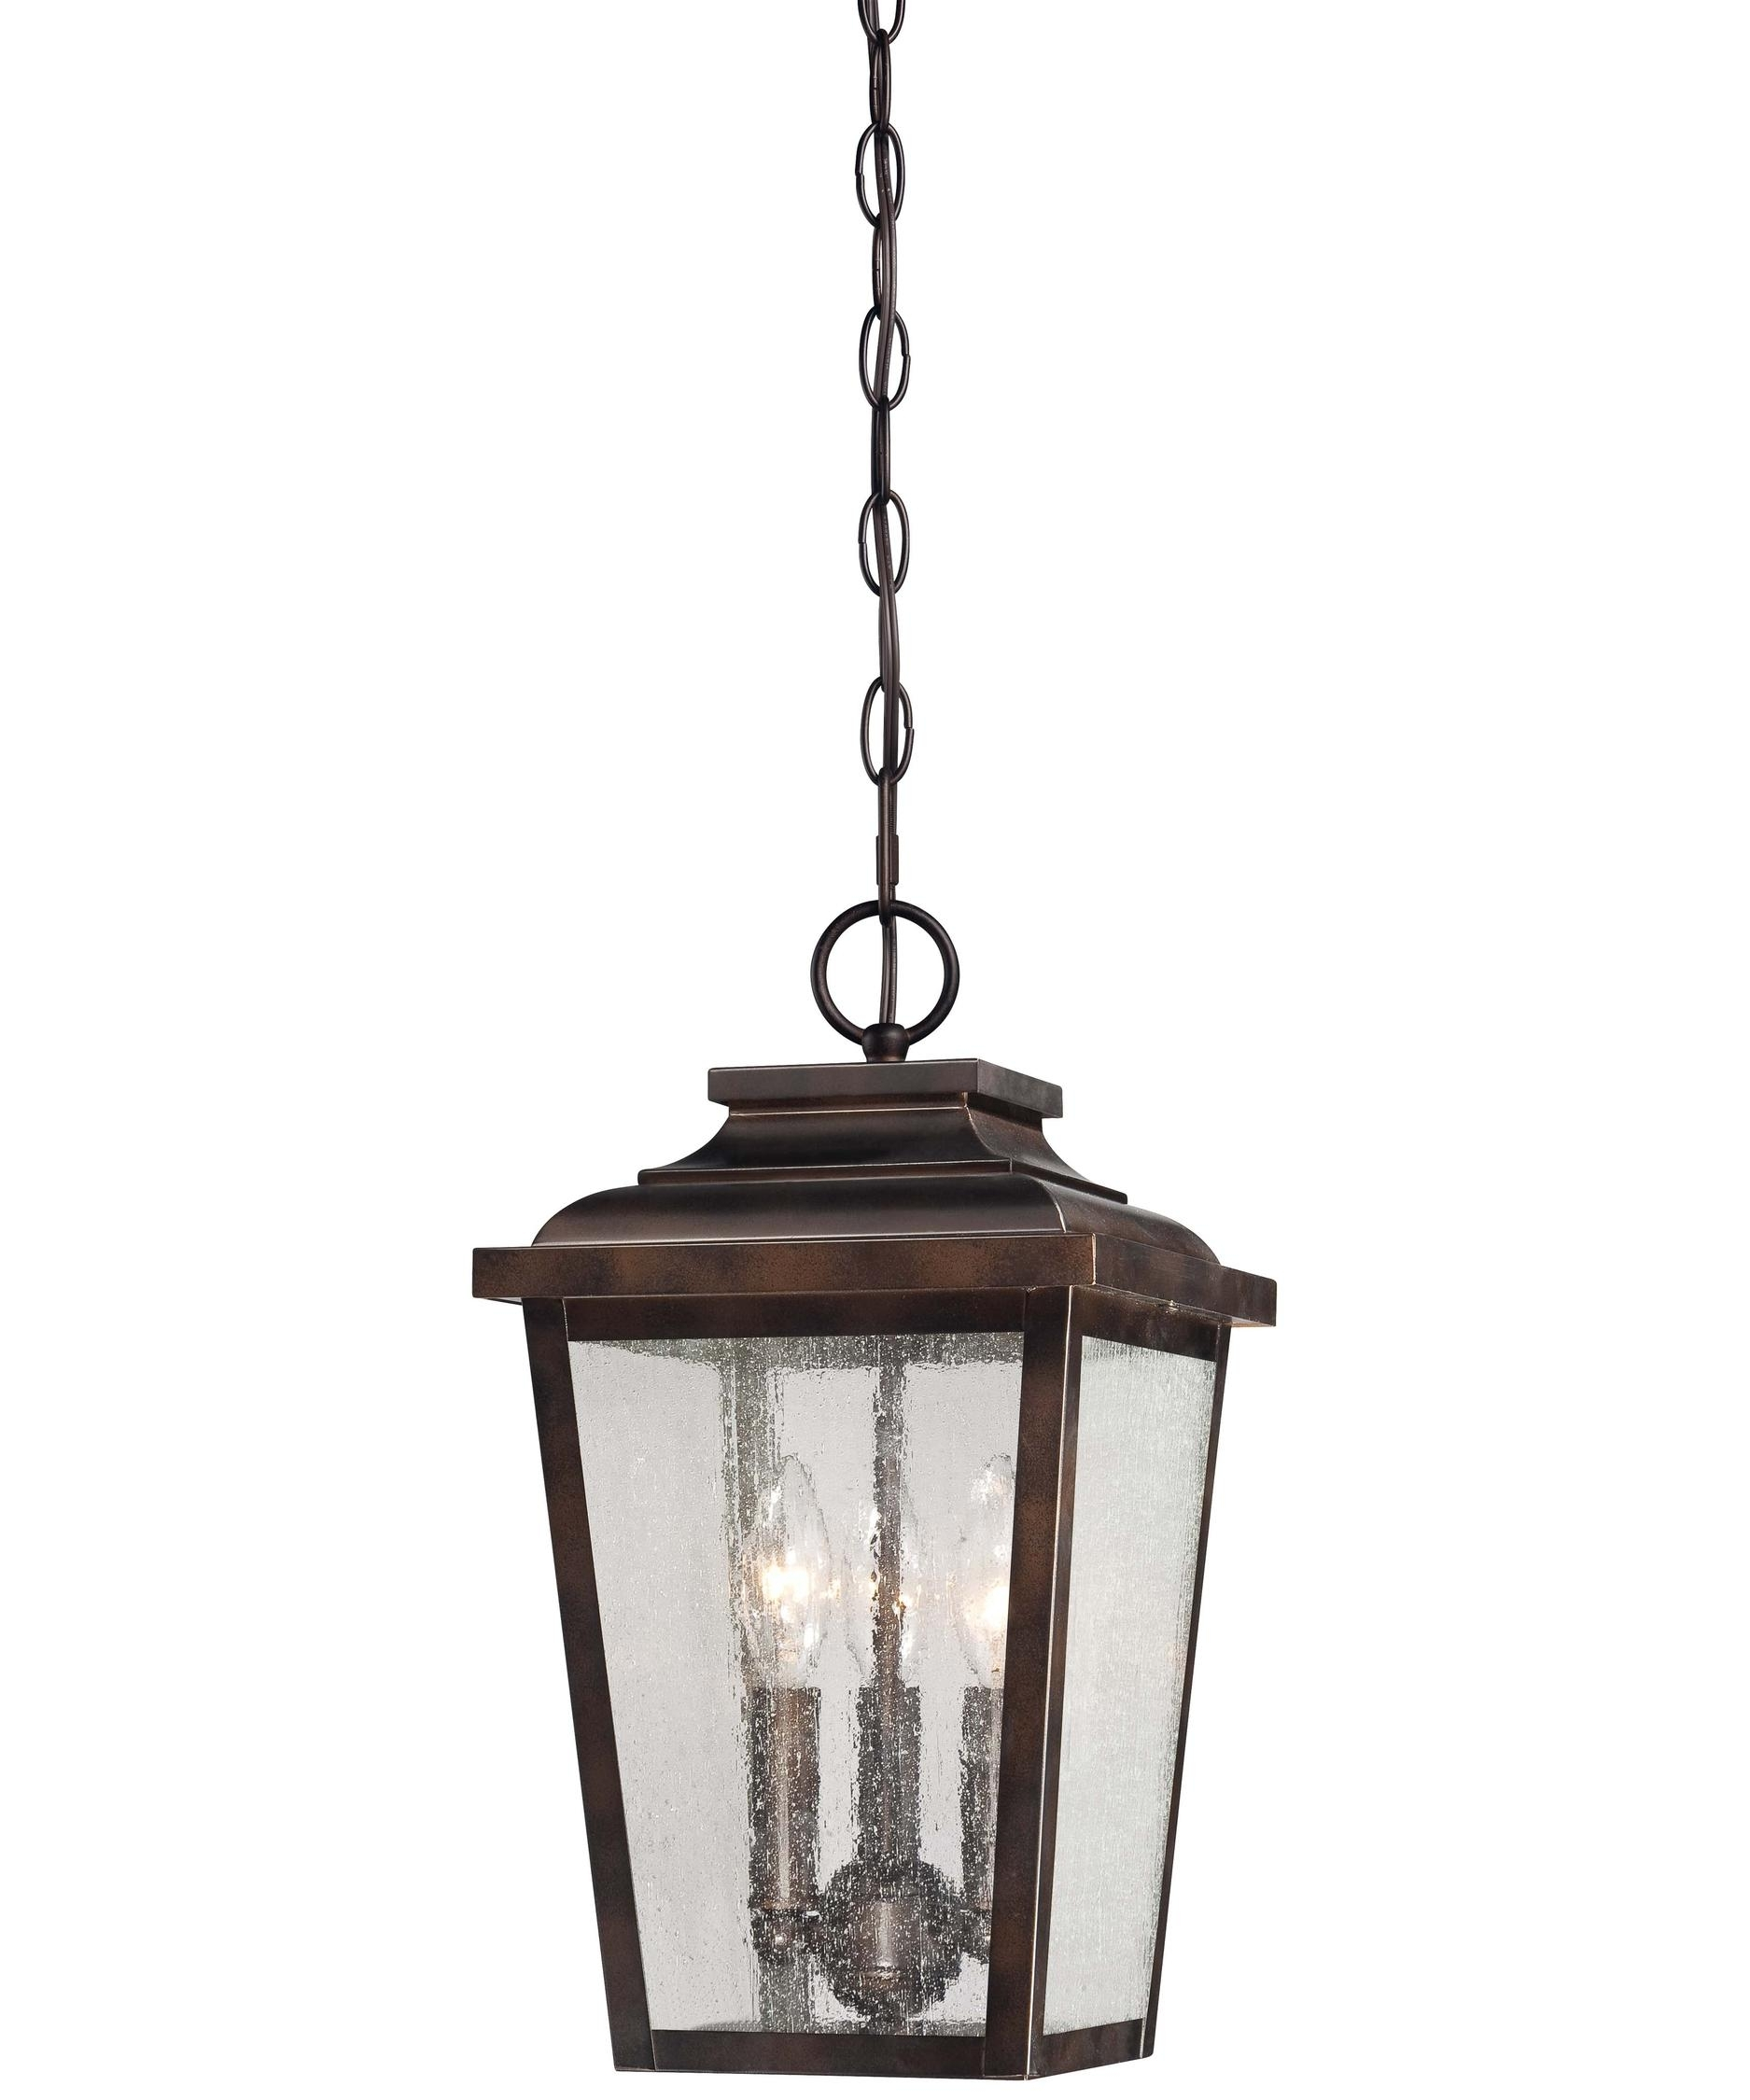 41 Most Necessary Pendant Outdoor Lighting Fixtures Etoplighting For Outdoor Lighting Pendant Fixtures (#3 of 15)